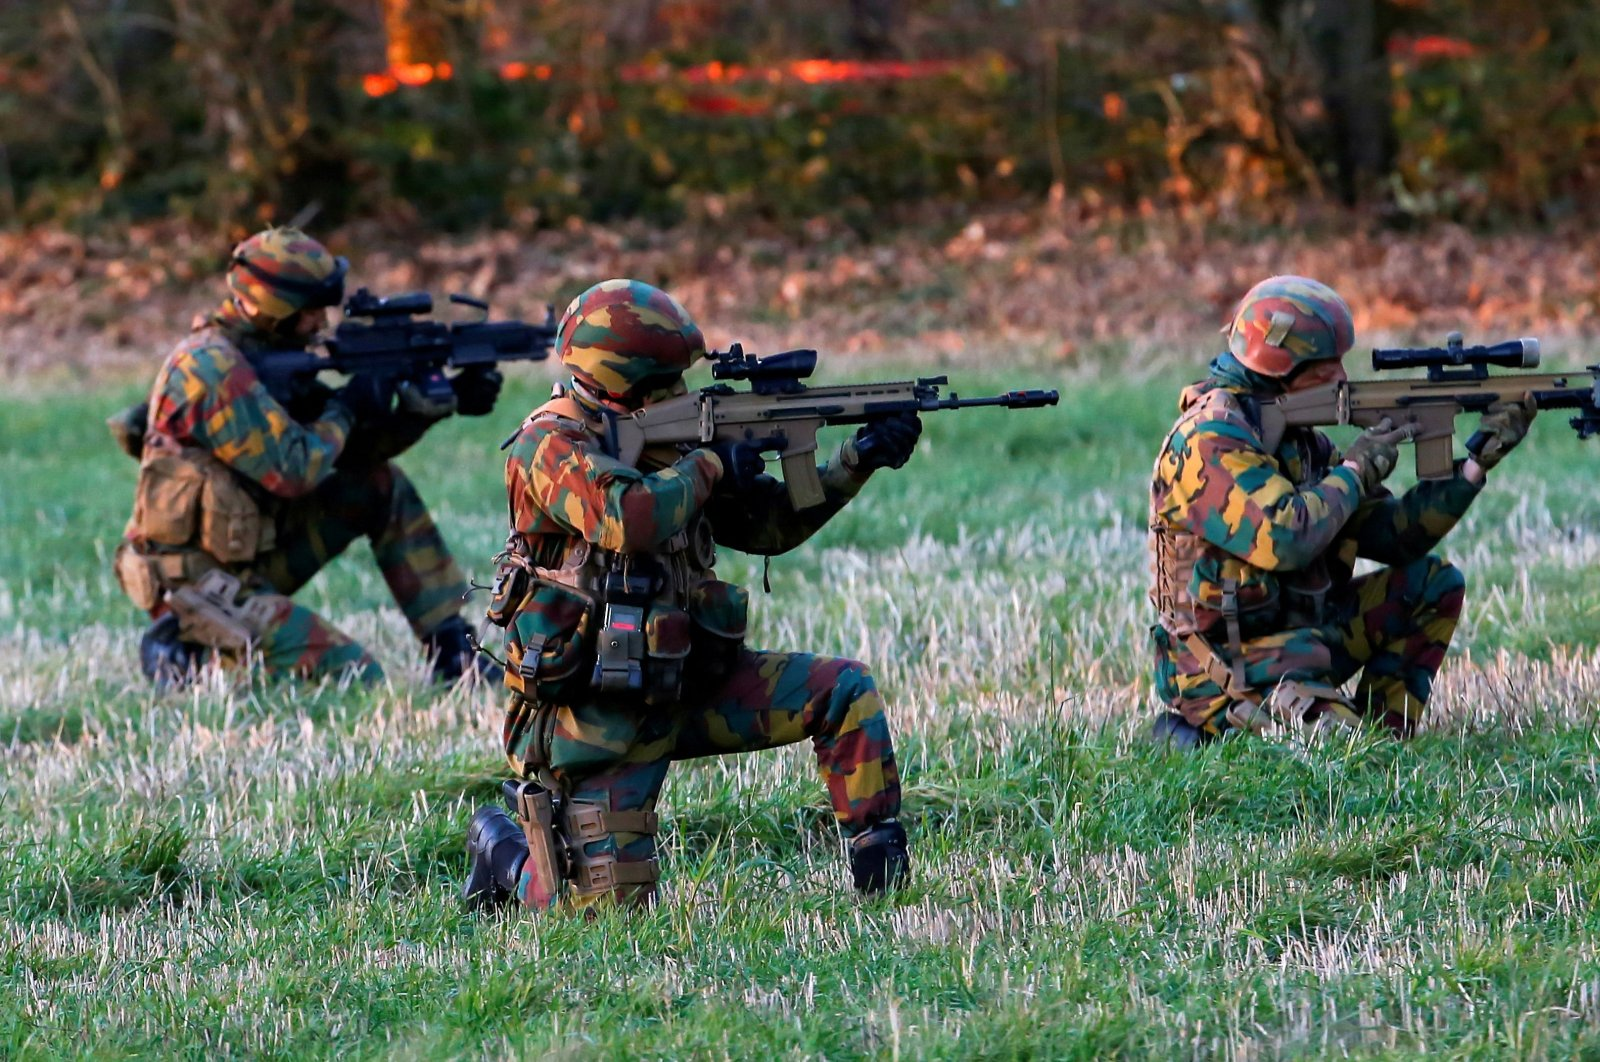 Belgian Special Forces are seen during the Black Blade military exercise involving several European Union countries and organized by the European Defense Agency at Florennes airbase, Belgium, Nov. 30, 2016. (Reuters Photo)